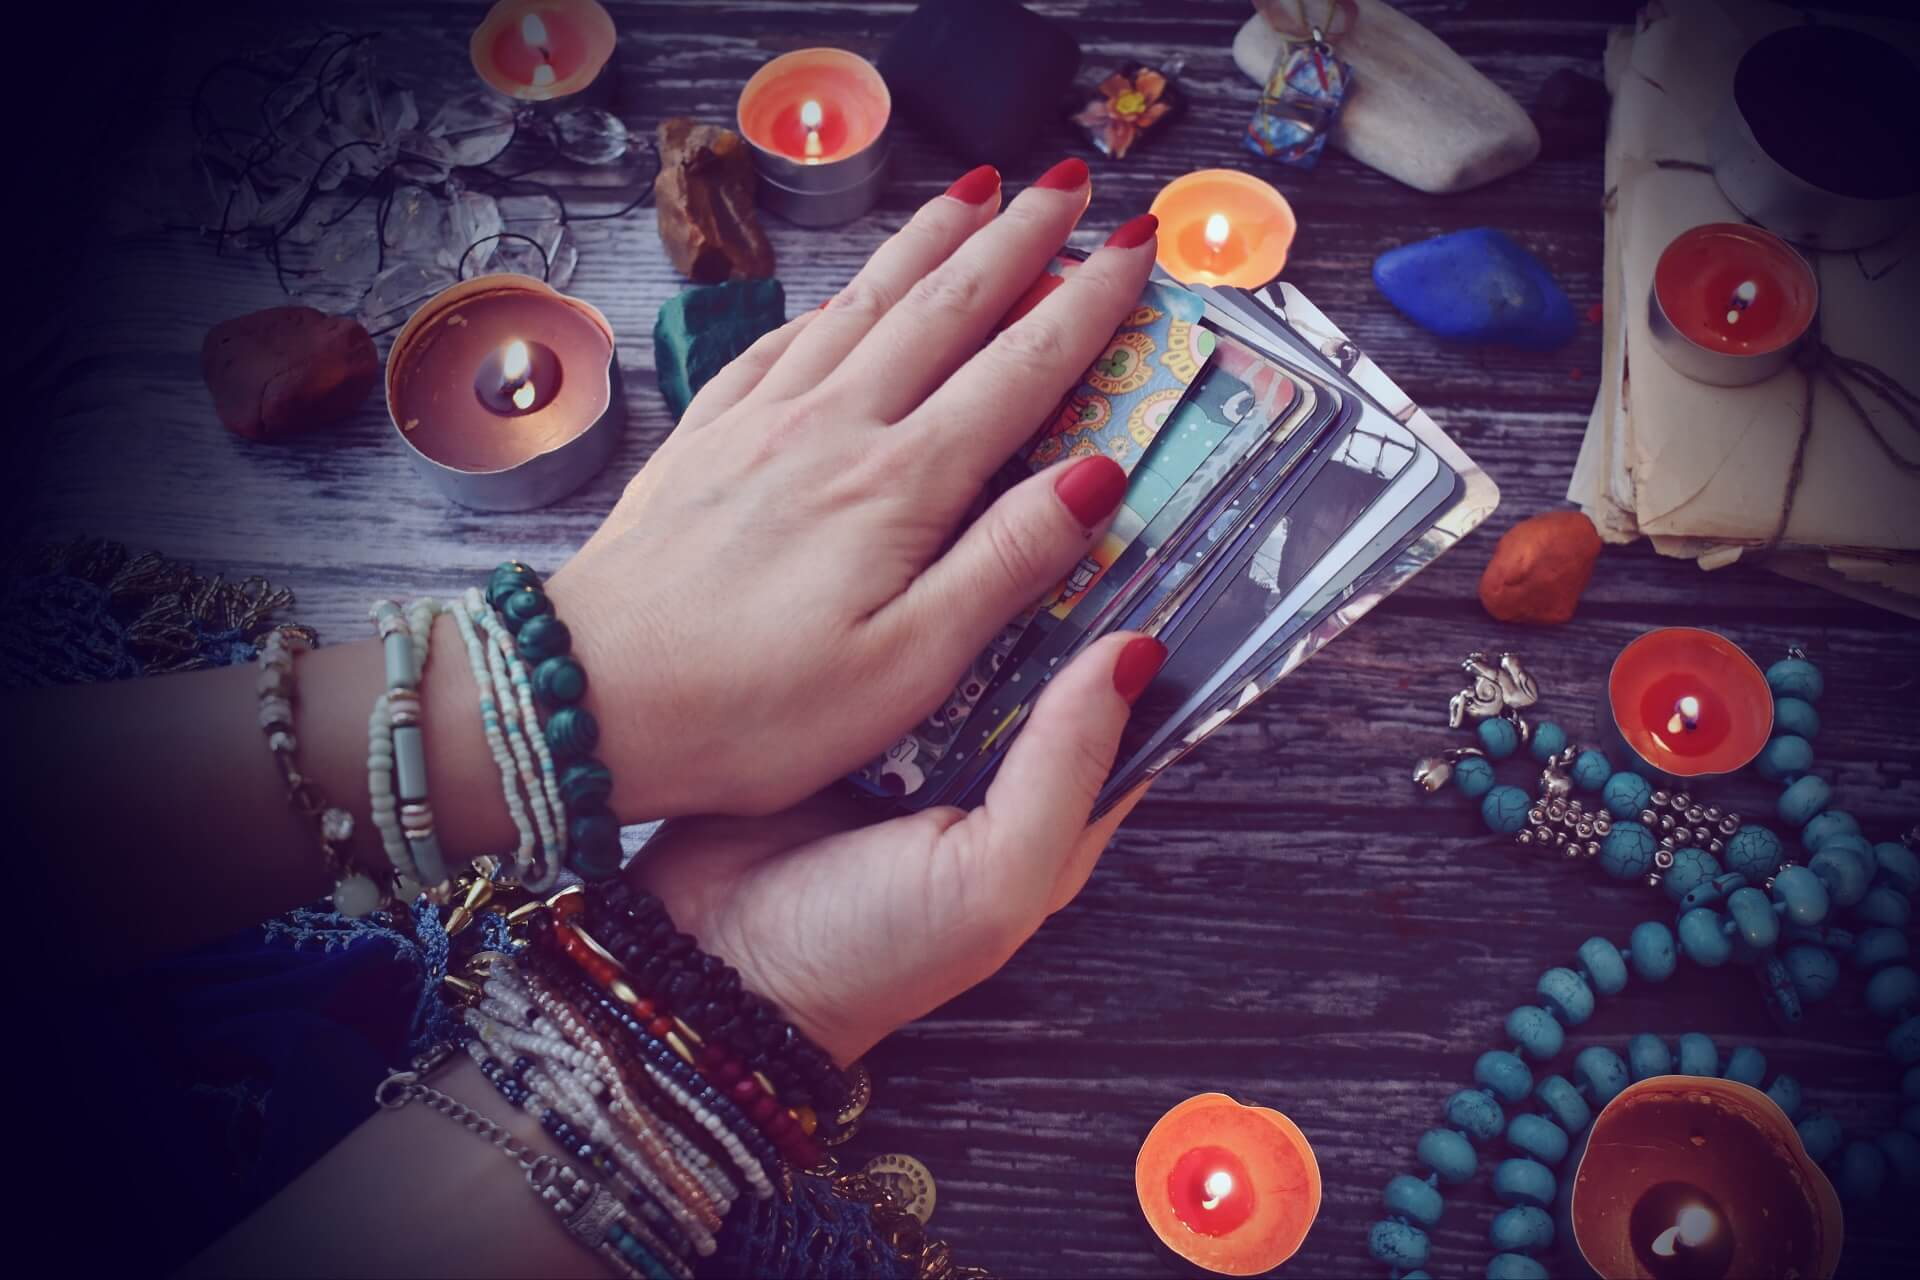 A psychic with Tarot cards